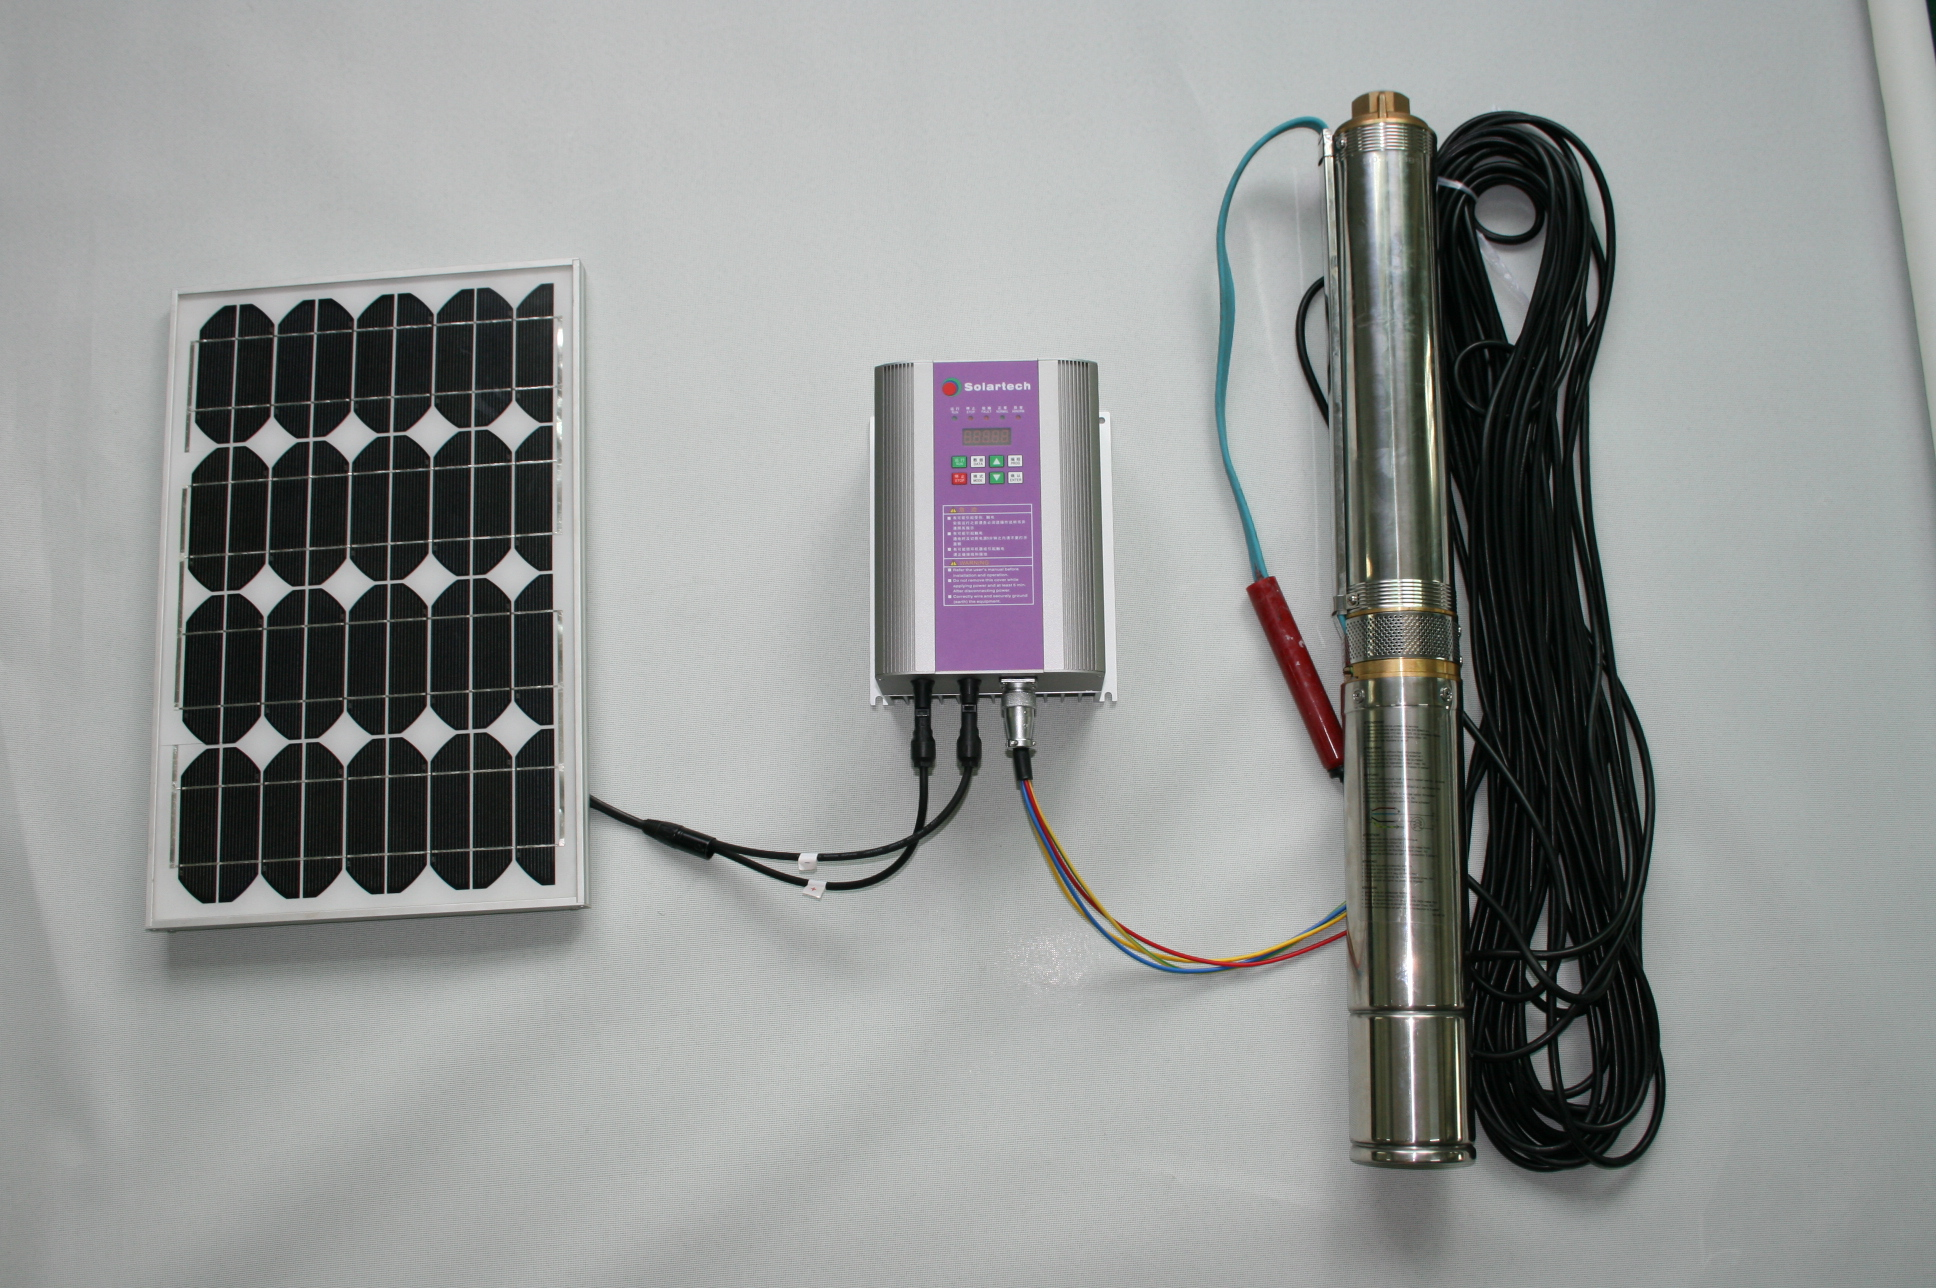 Solar Pumping Systems for Irrigation or Home Use